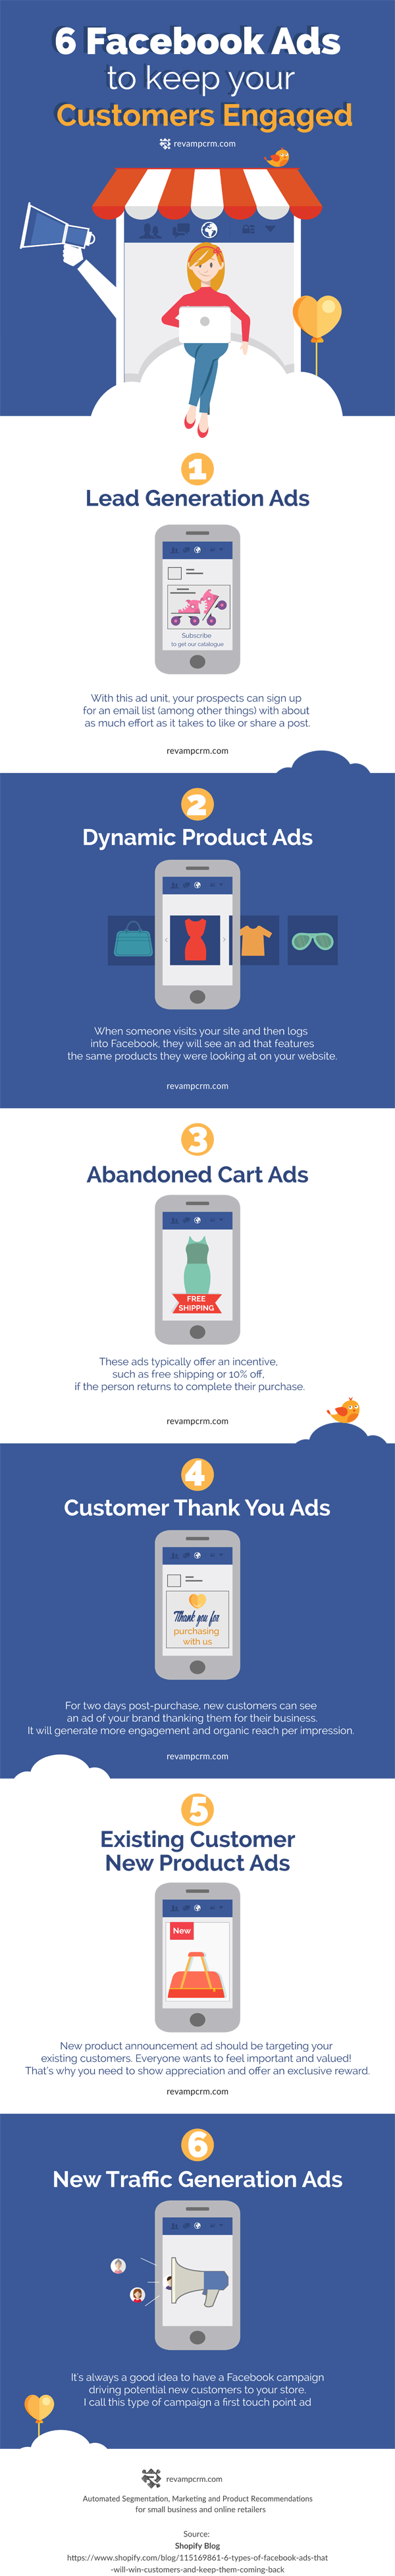 6 Facebook Ads to Keep Your Customers Engaged [Infographic] | Social Media Today